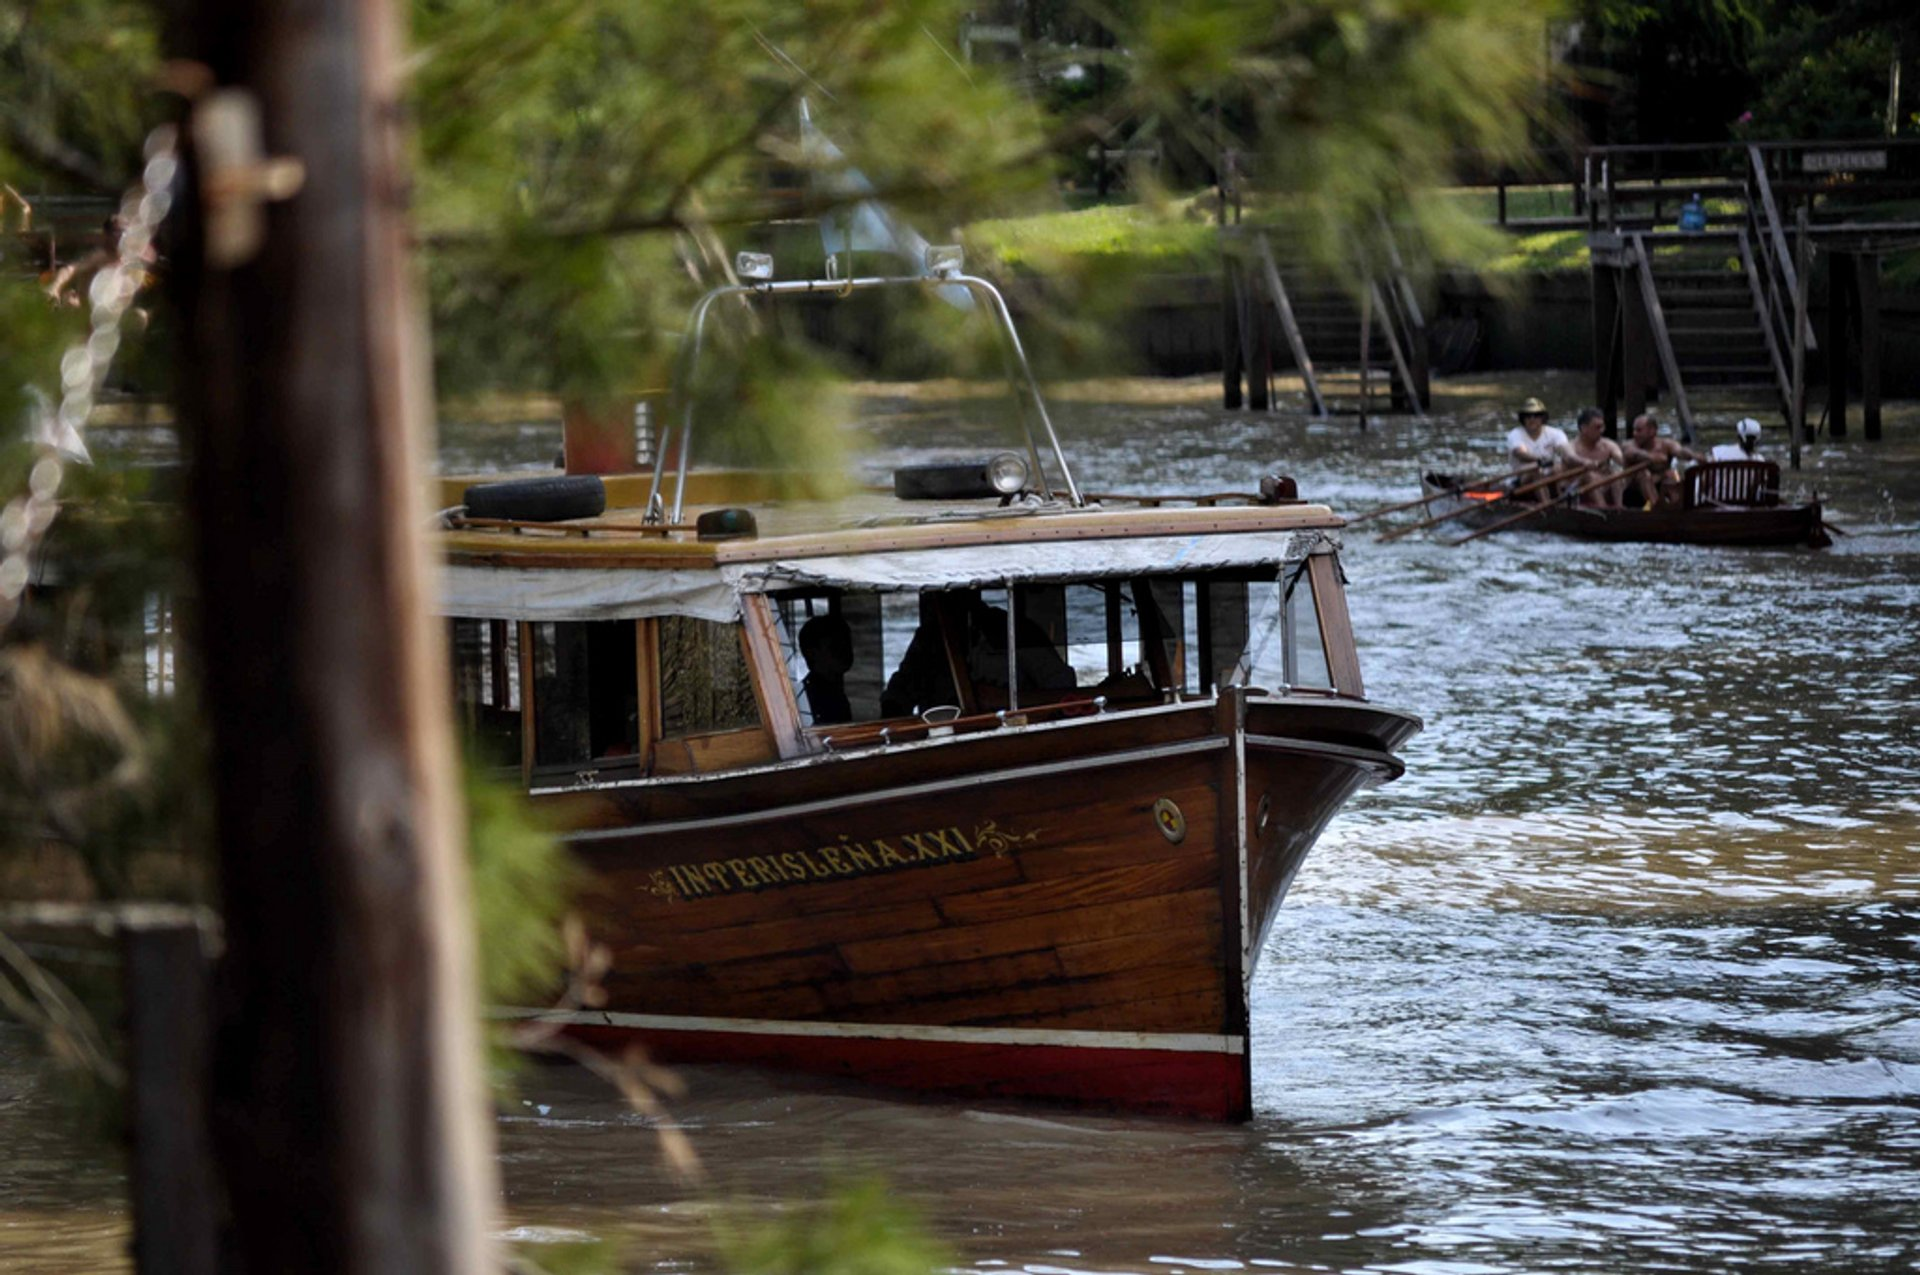 Best time to see Getaway to Tigre in Buenos Aires 2020